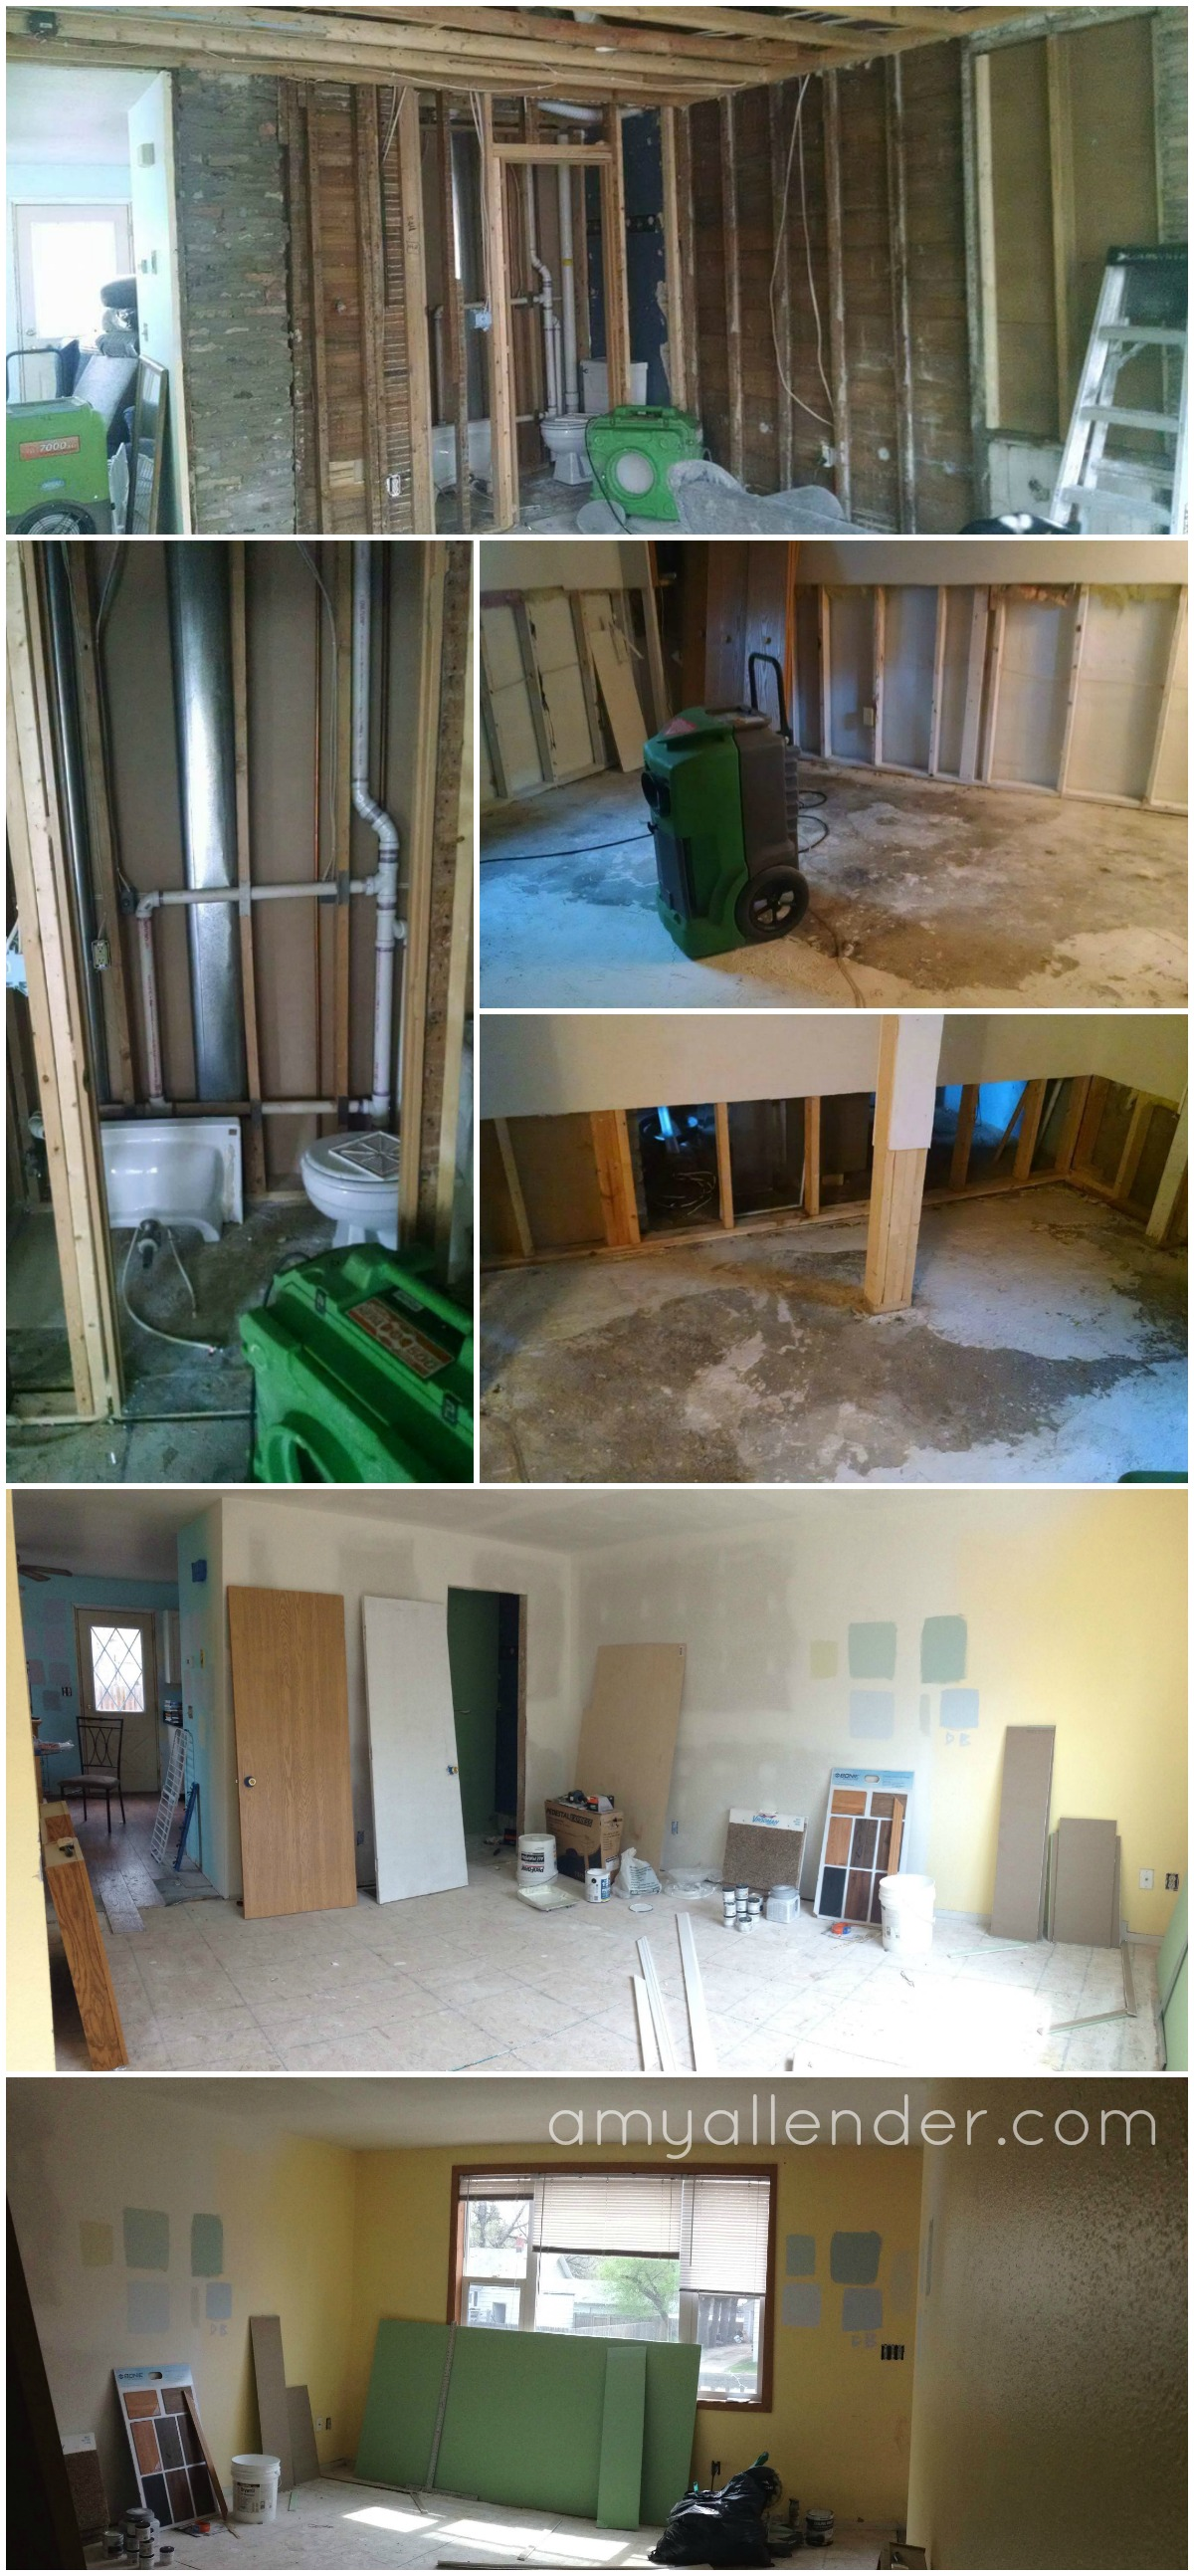 flooded house before